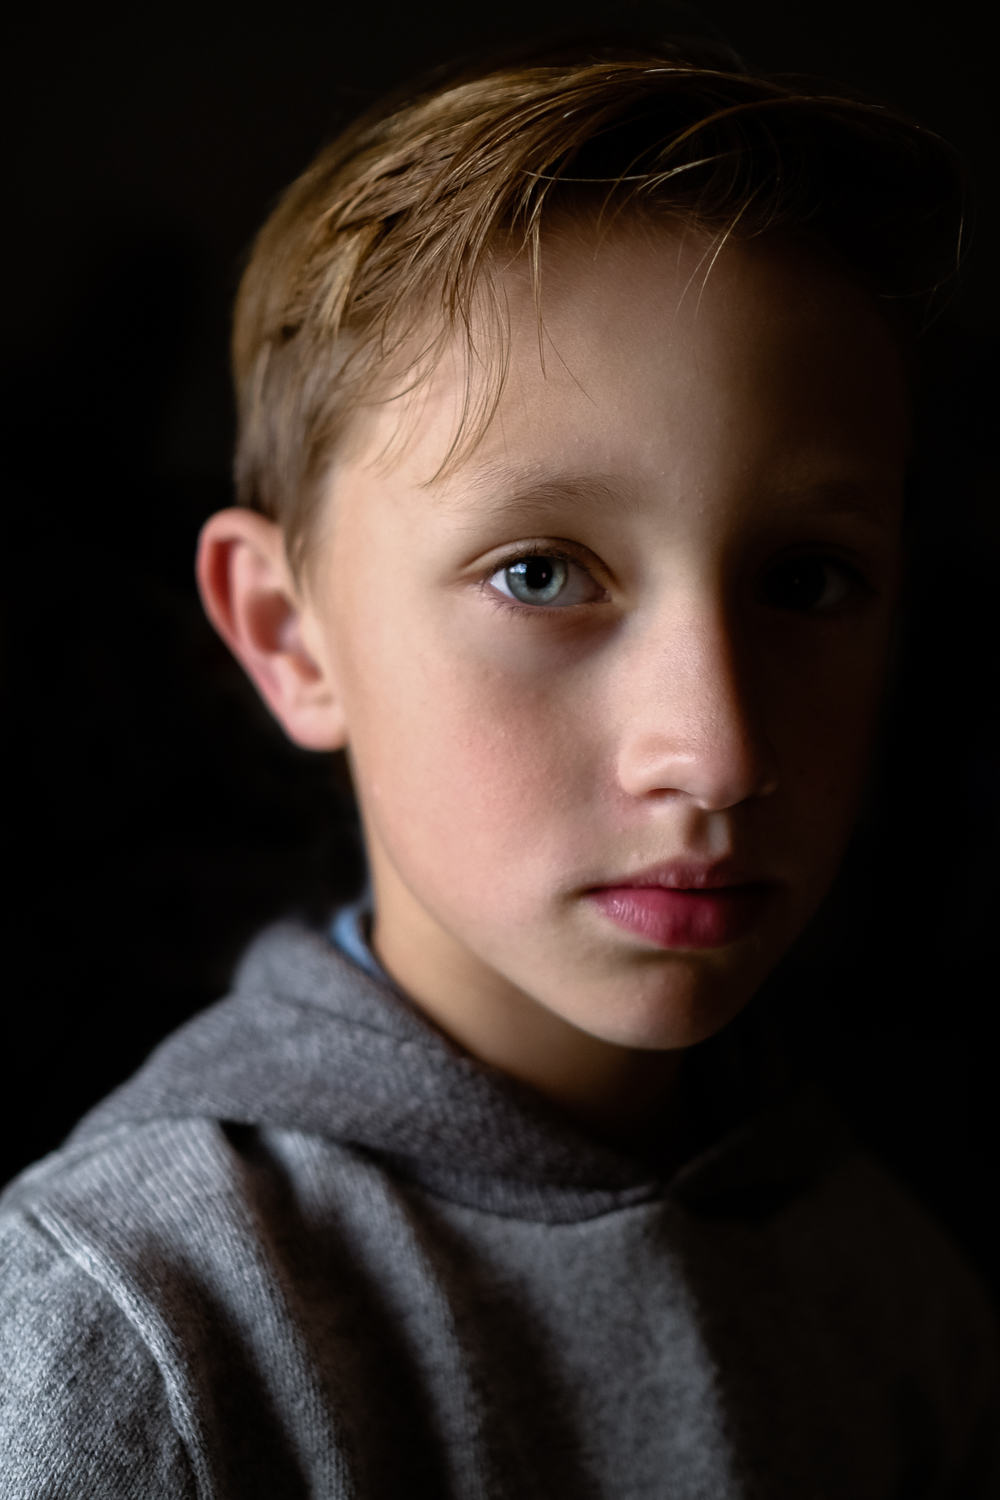 side lit portrait of blonde young boy